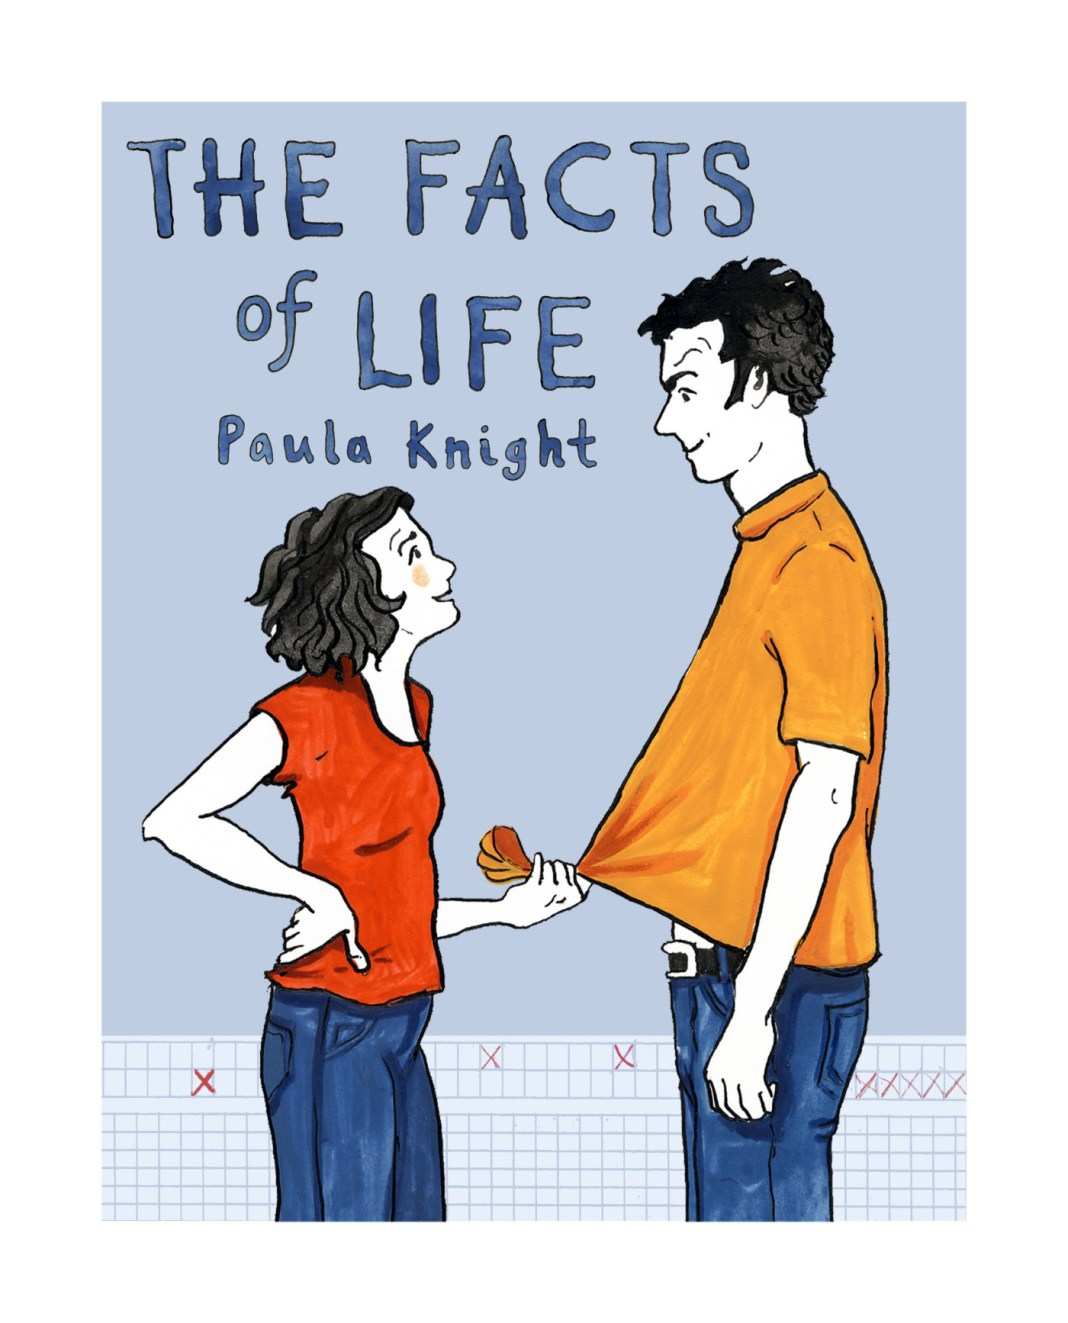 Cover Art for The Facts of Life, graphic memoir by Paula Knight